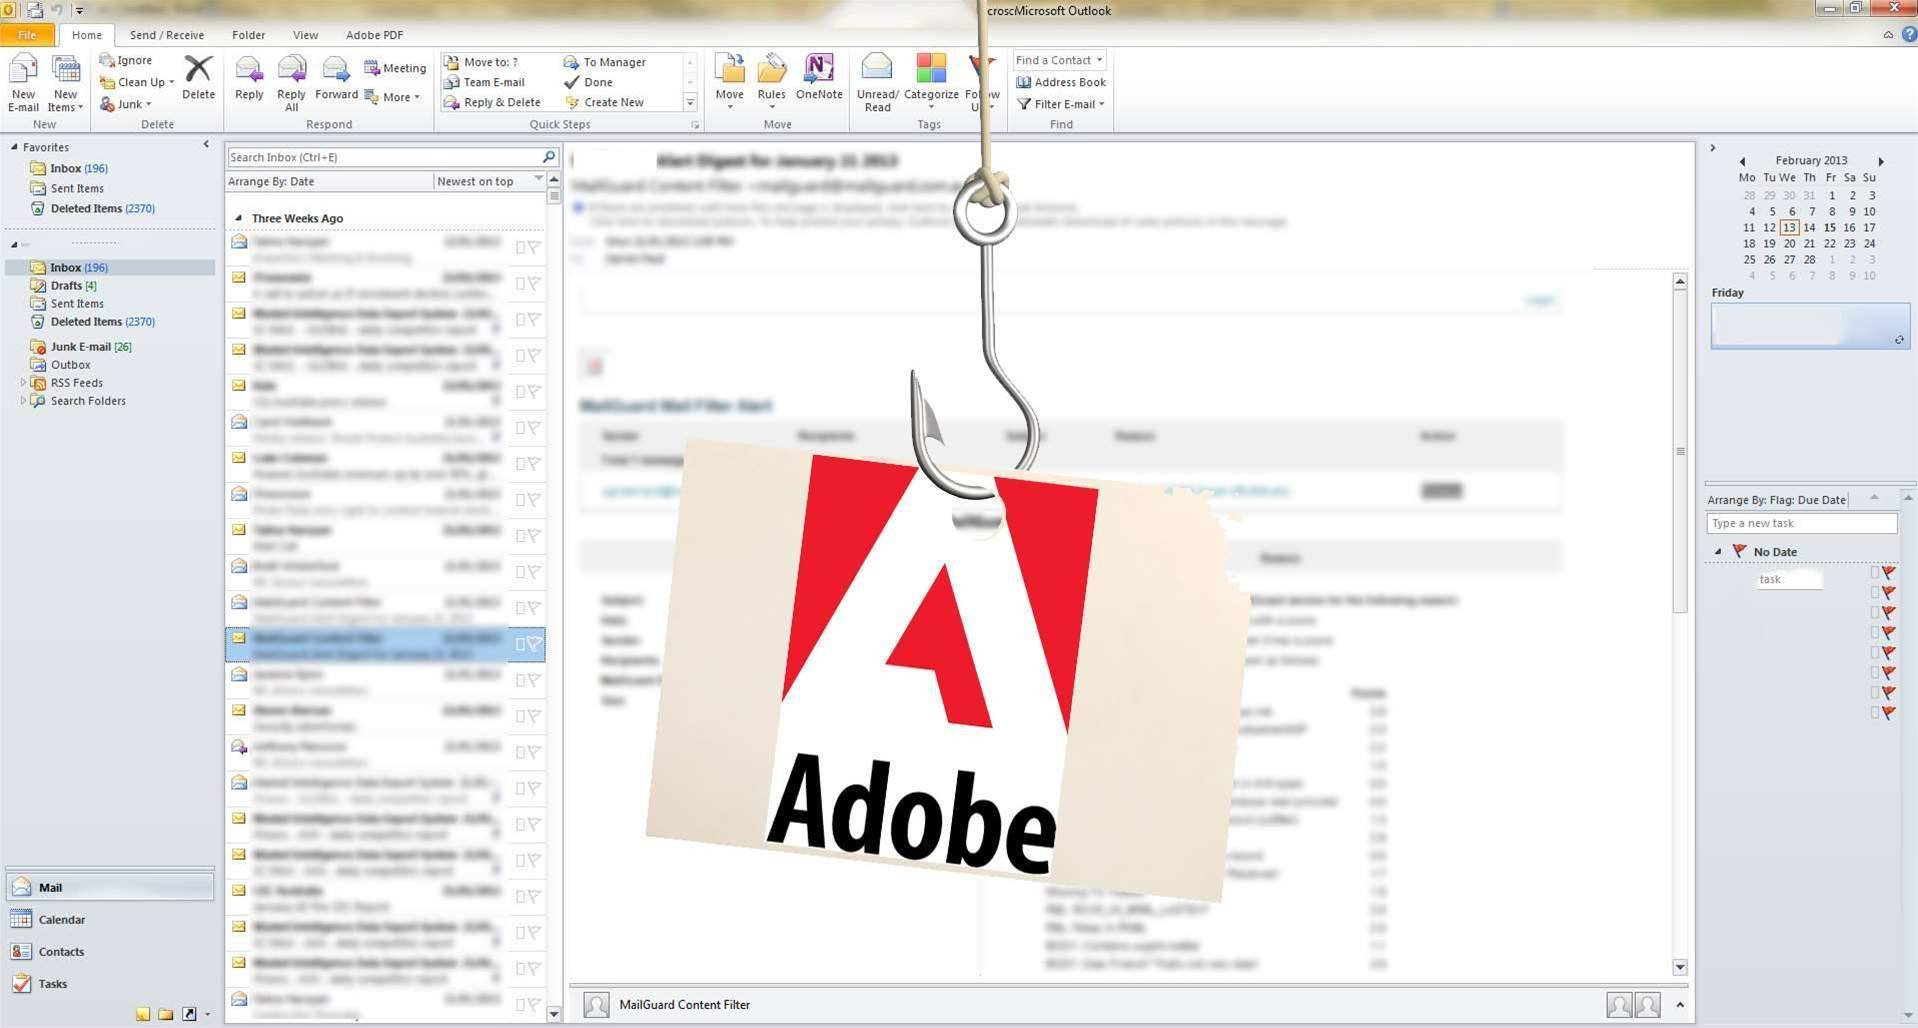 Adobe Reader zero day used in phishing attacks